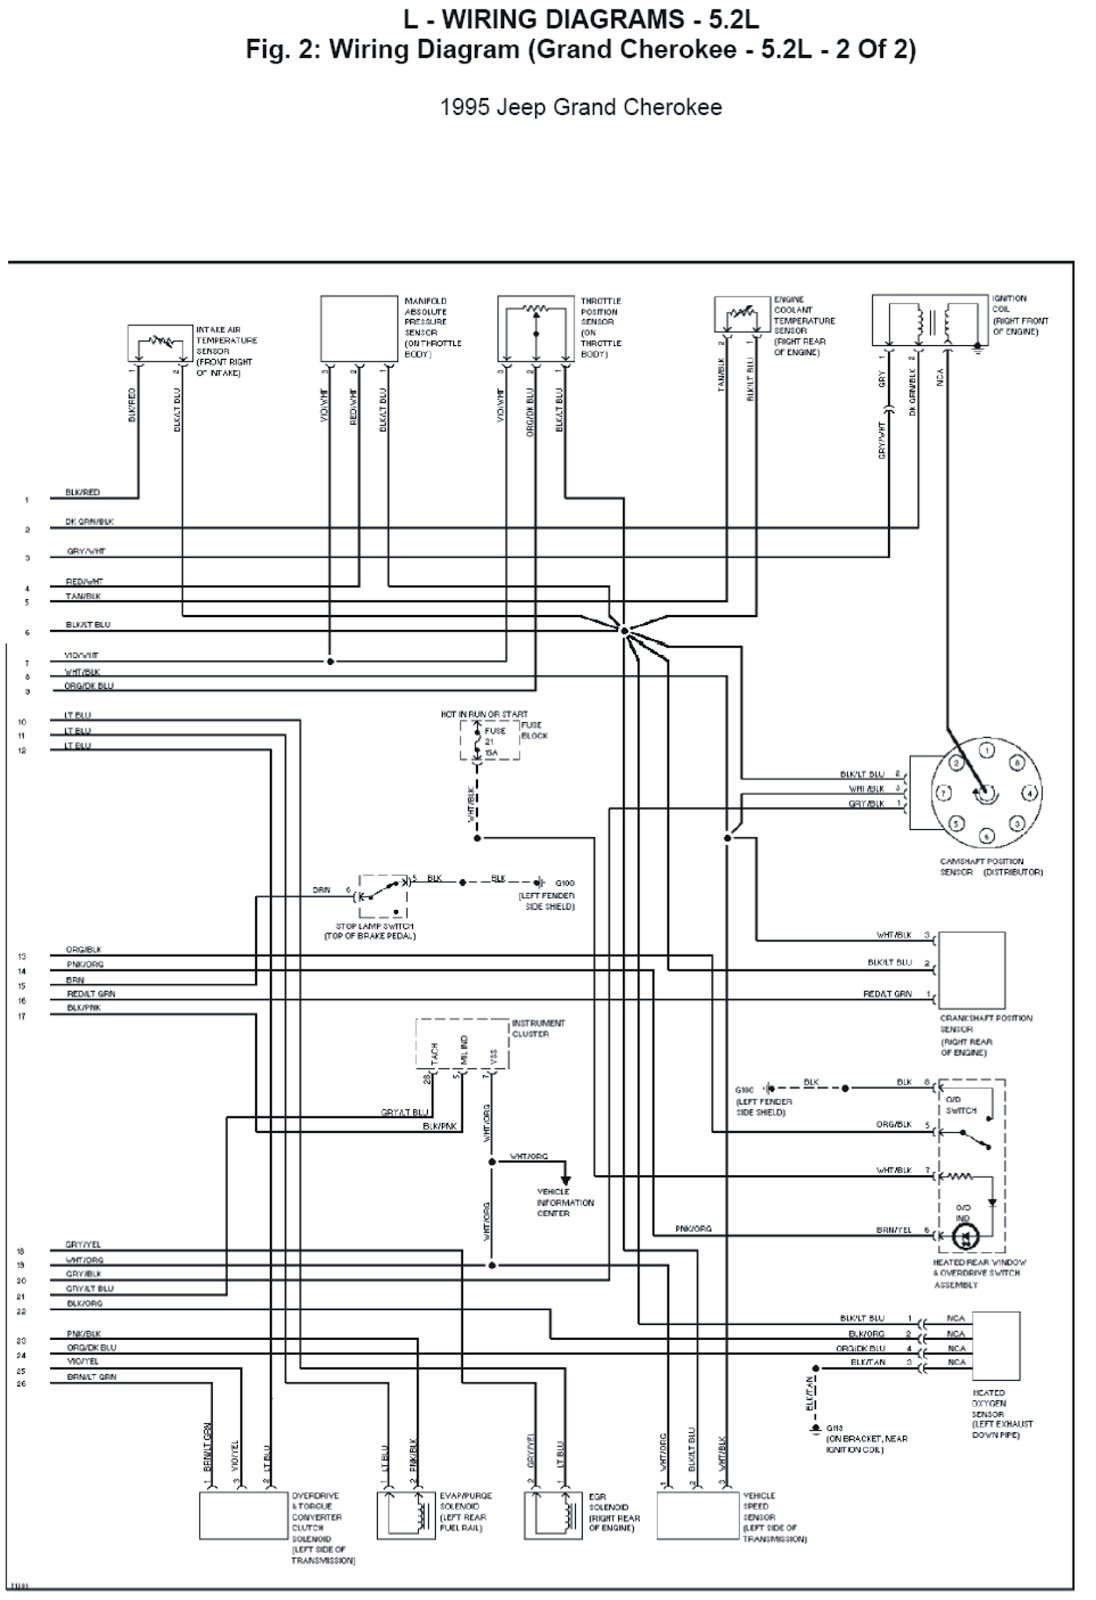 93 jeep grand cherokee ignition wiring diagram radio wiring diagram 1992 jeep cherokeerh svlc [ 1096 x 1600 Pixel ]